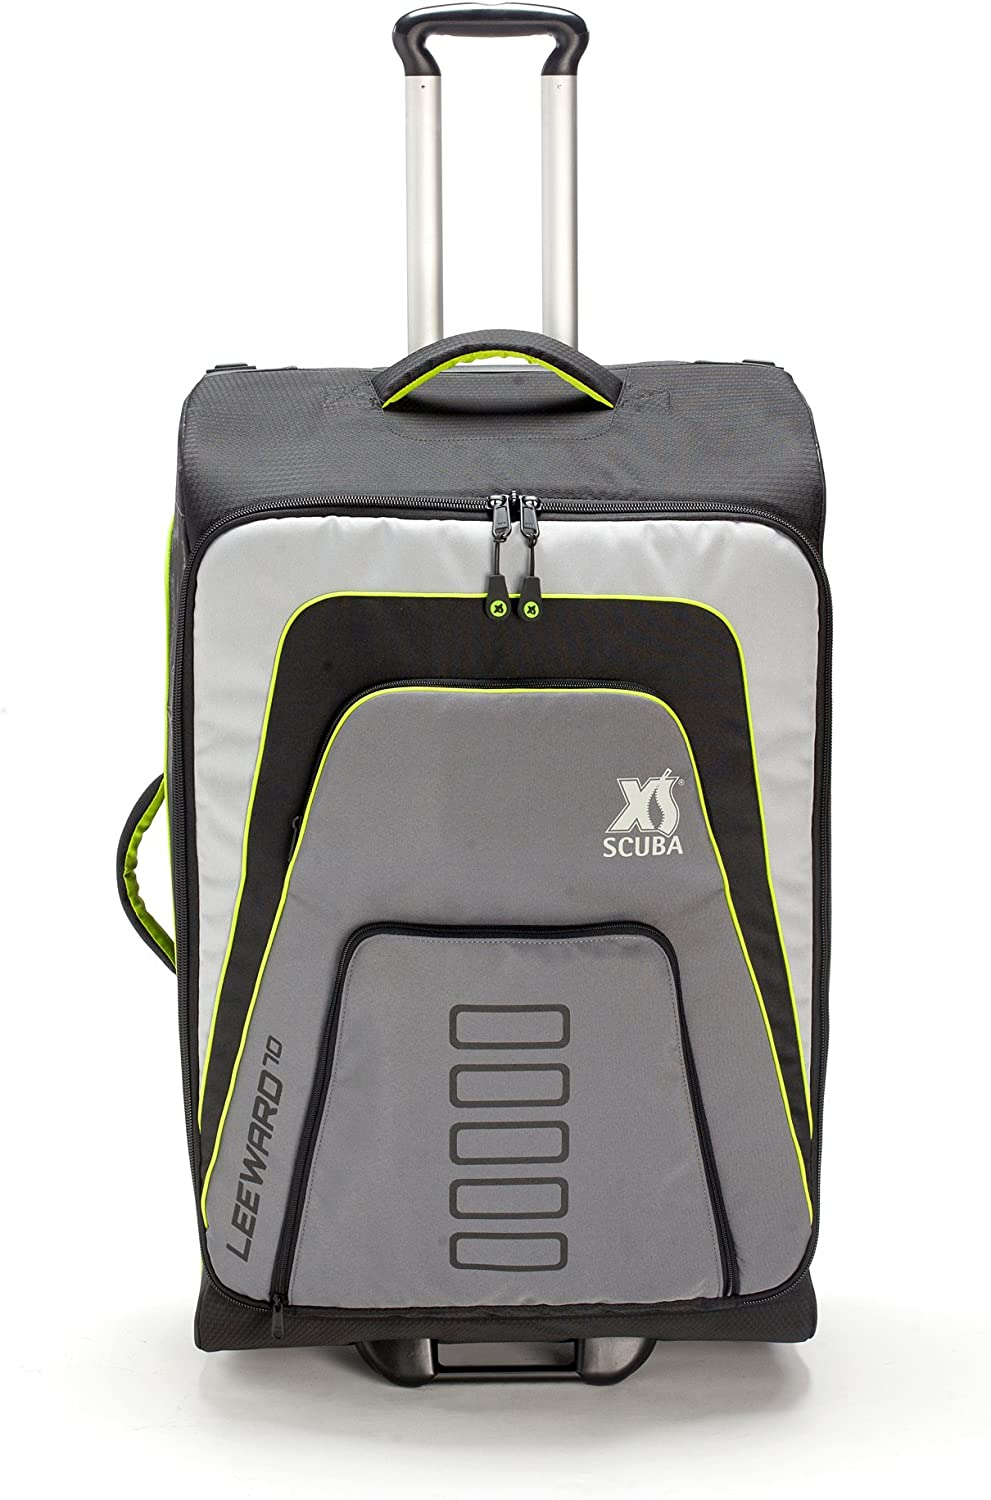 XS Scuba Challenge the lowest price Leeward 70 Backpack Roller Max 60% OFF